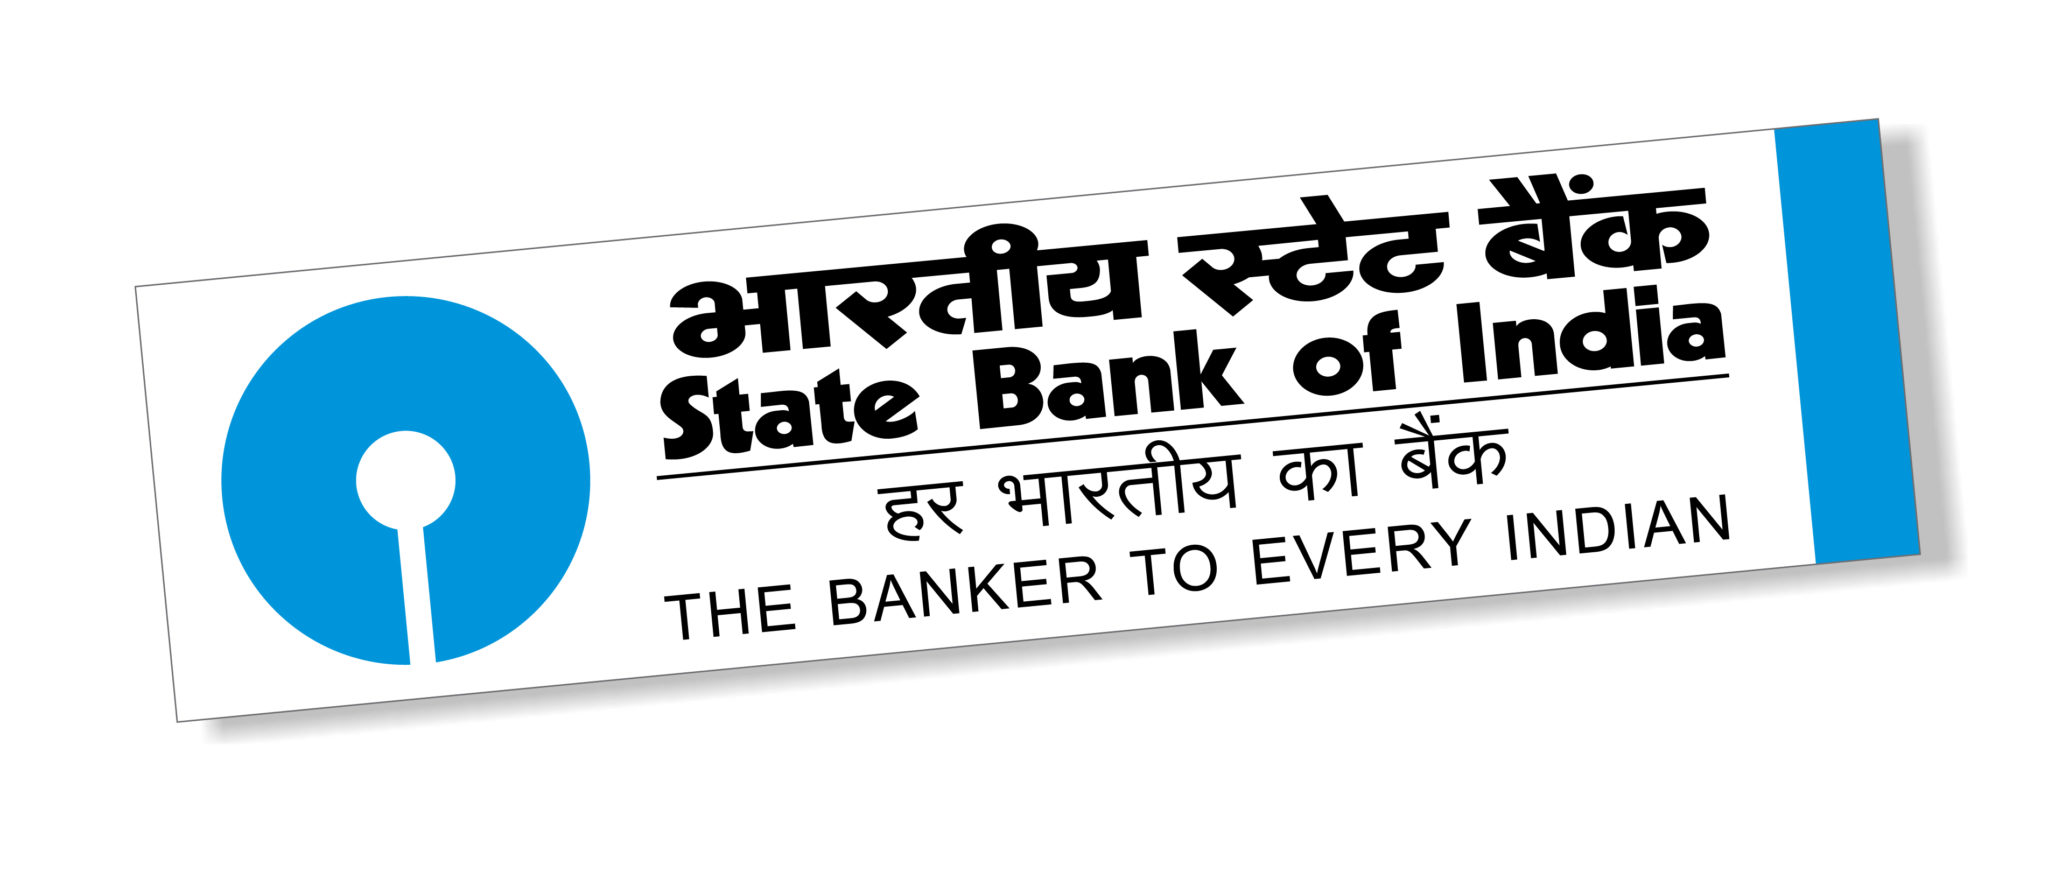 State Bank Of India_image0